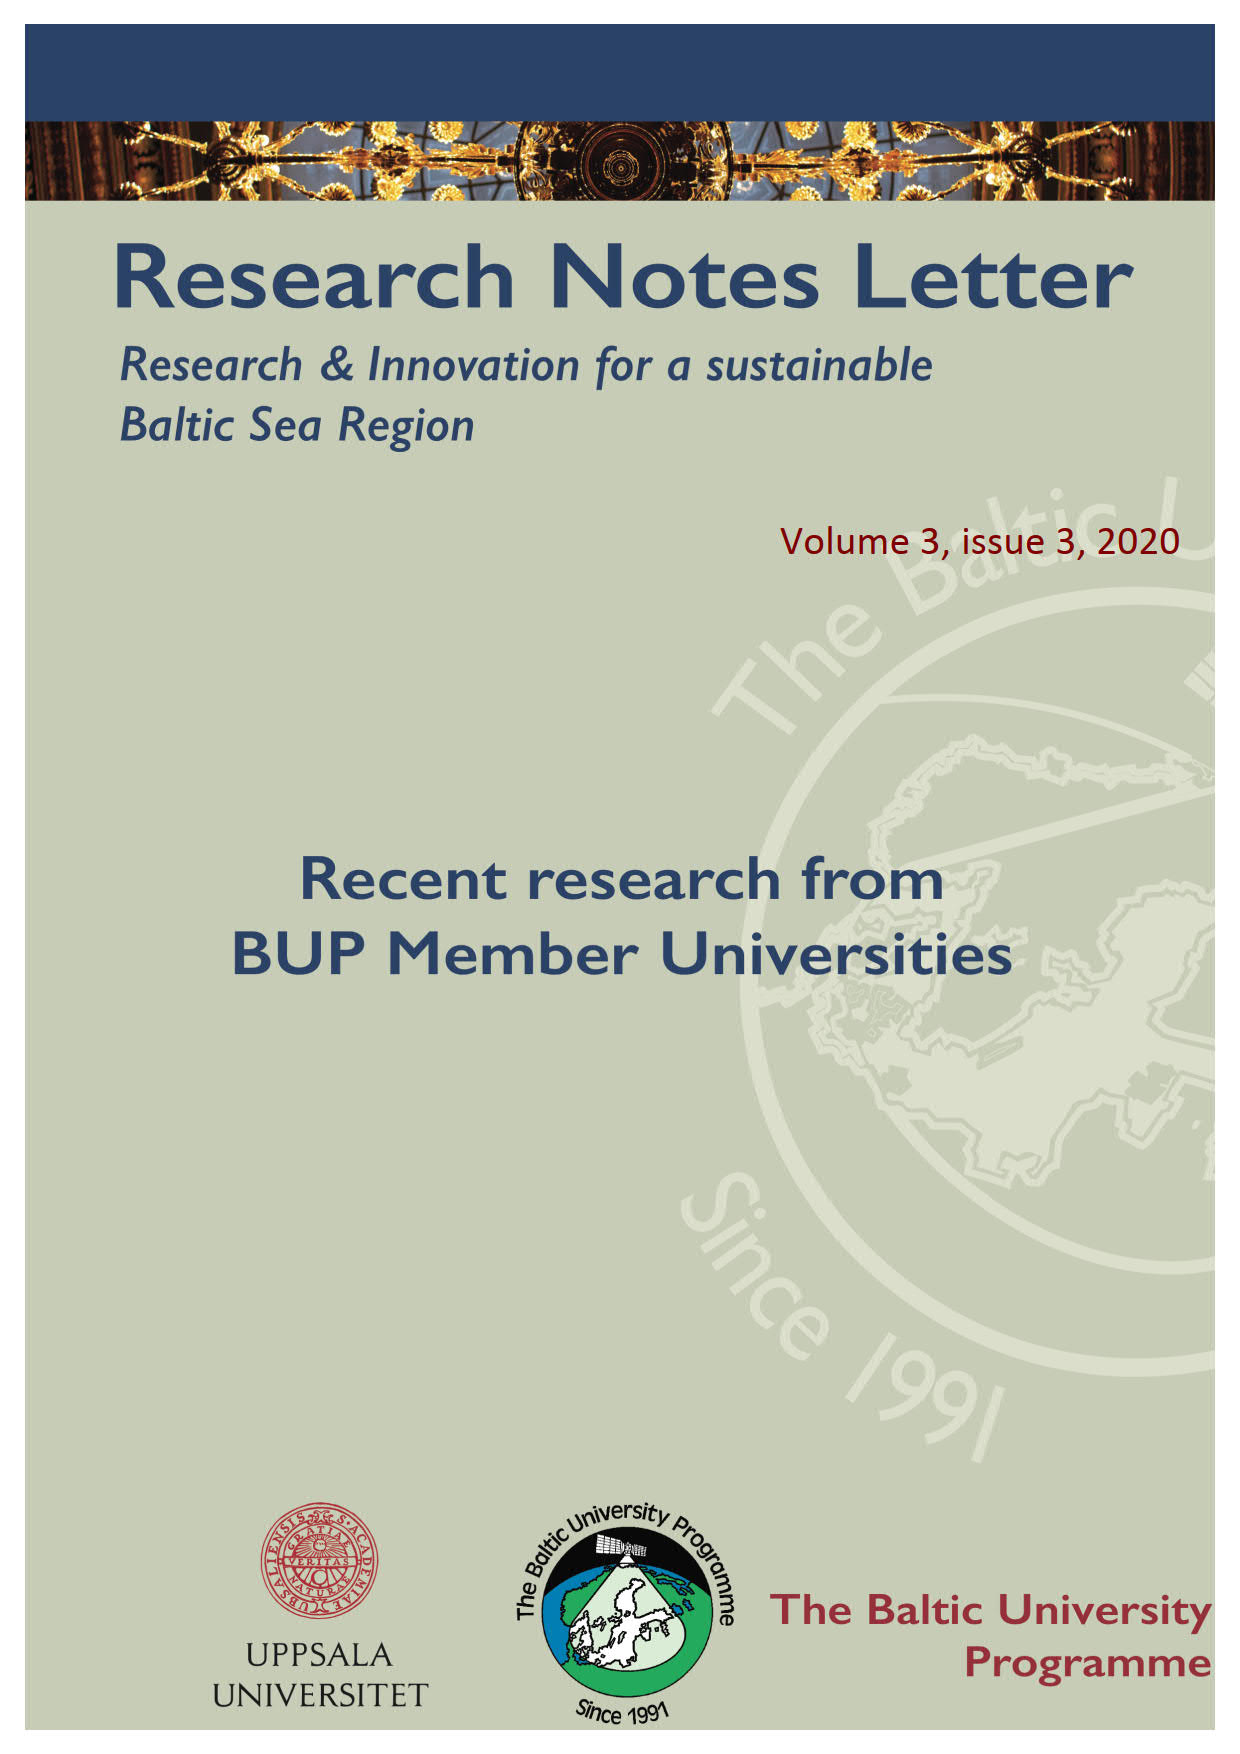 cover of Research Notesl Letter